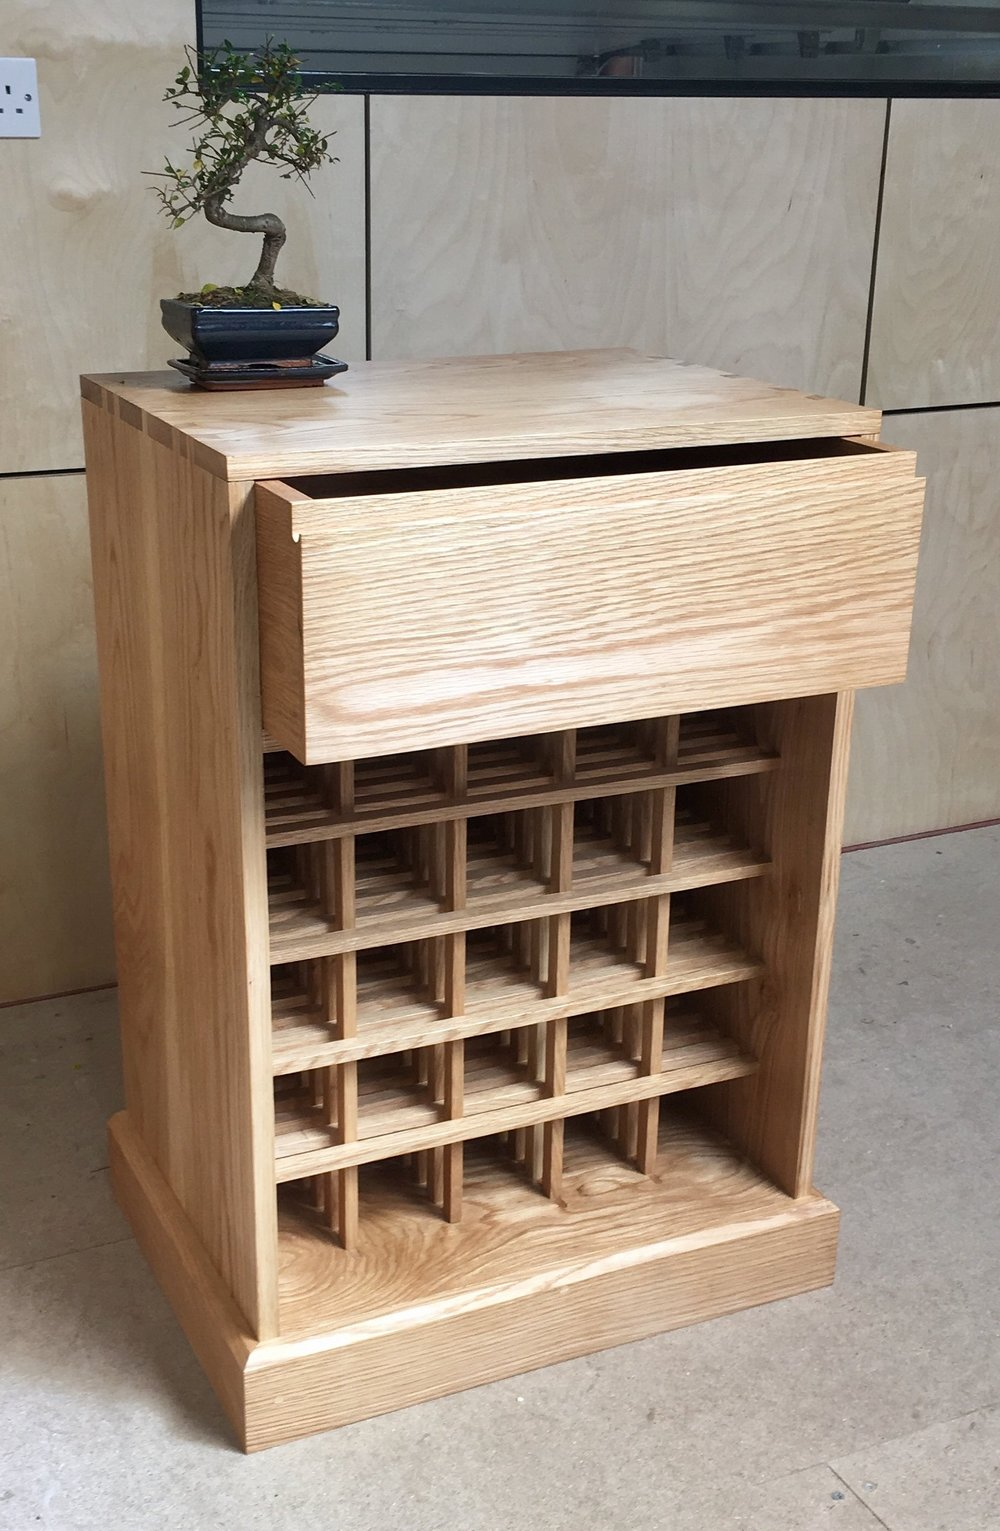 Takumi Woodwork - Oak Wine Rack